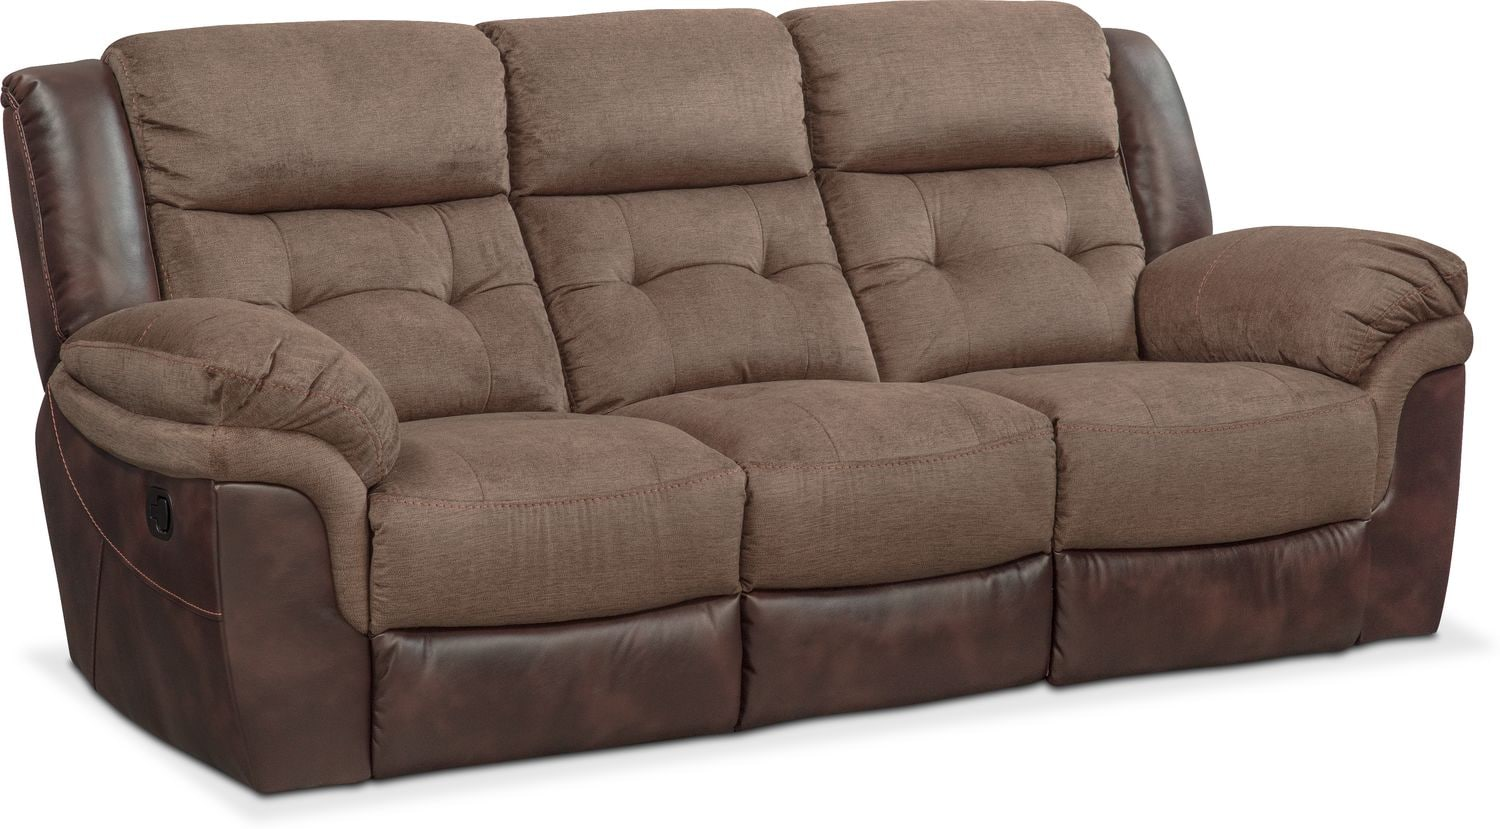 Tacoma Manual Reclining Sofa - Brown by One80  sc 1 st  American Signature Furniture & Tacoma Manual Reclining Sofa - Brown | American Signature Furniture islam-shia.org